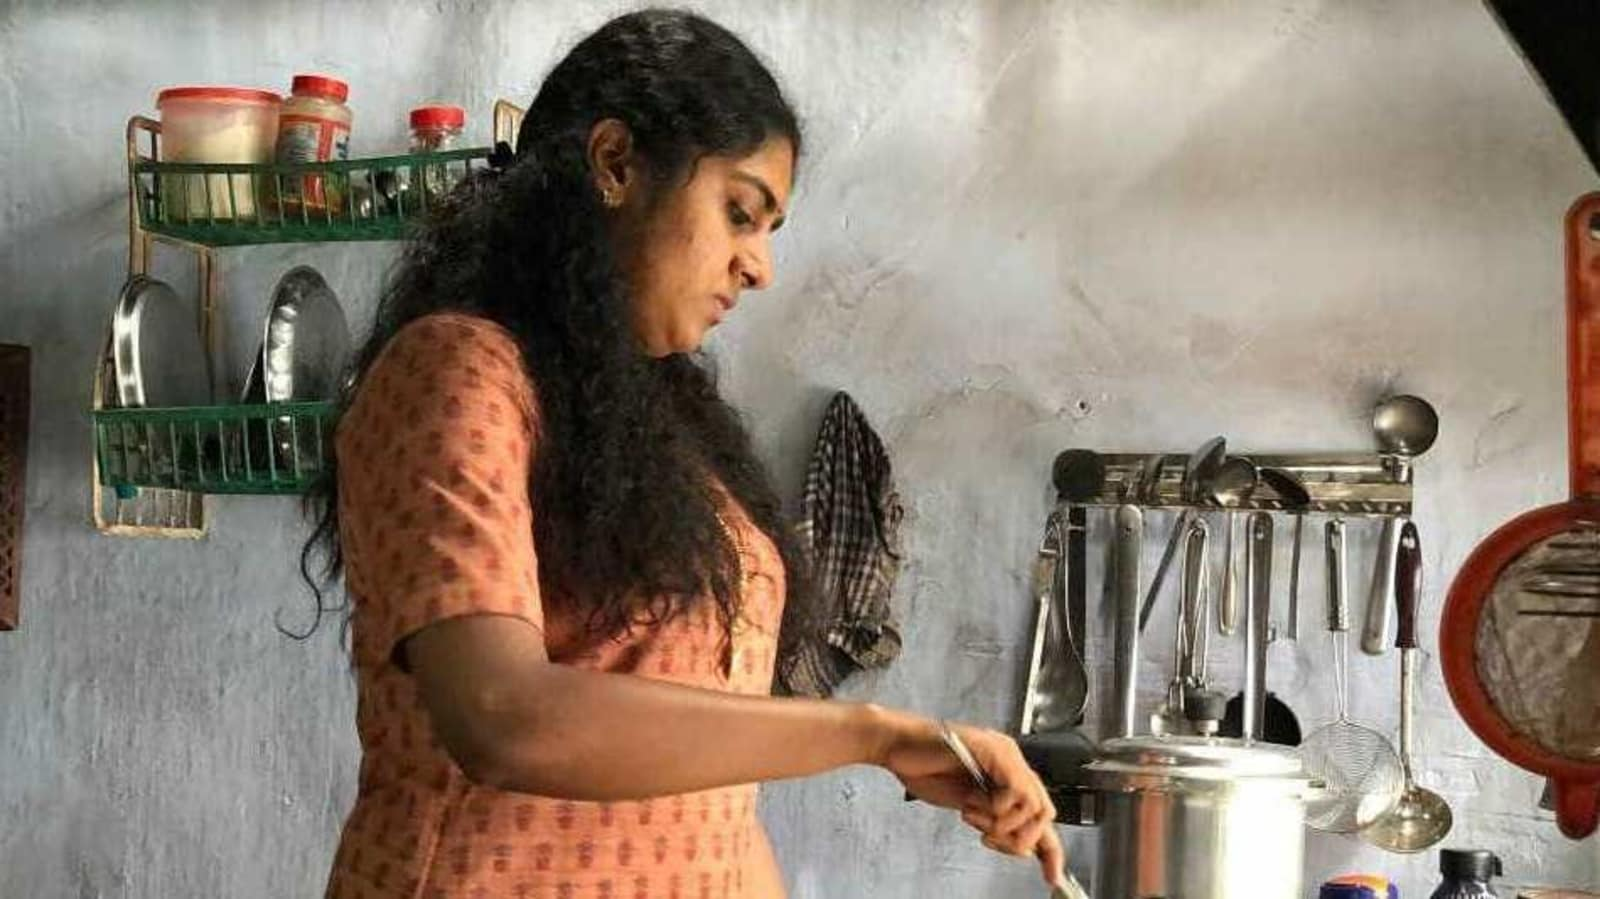 The Great Indian Kitchen Review Powerful Film On Patriarchy And Men Governed Traditions Hindustan Times